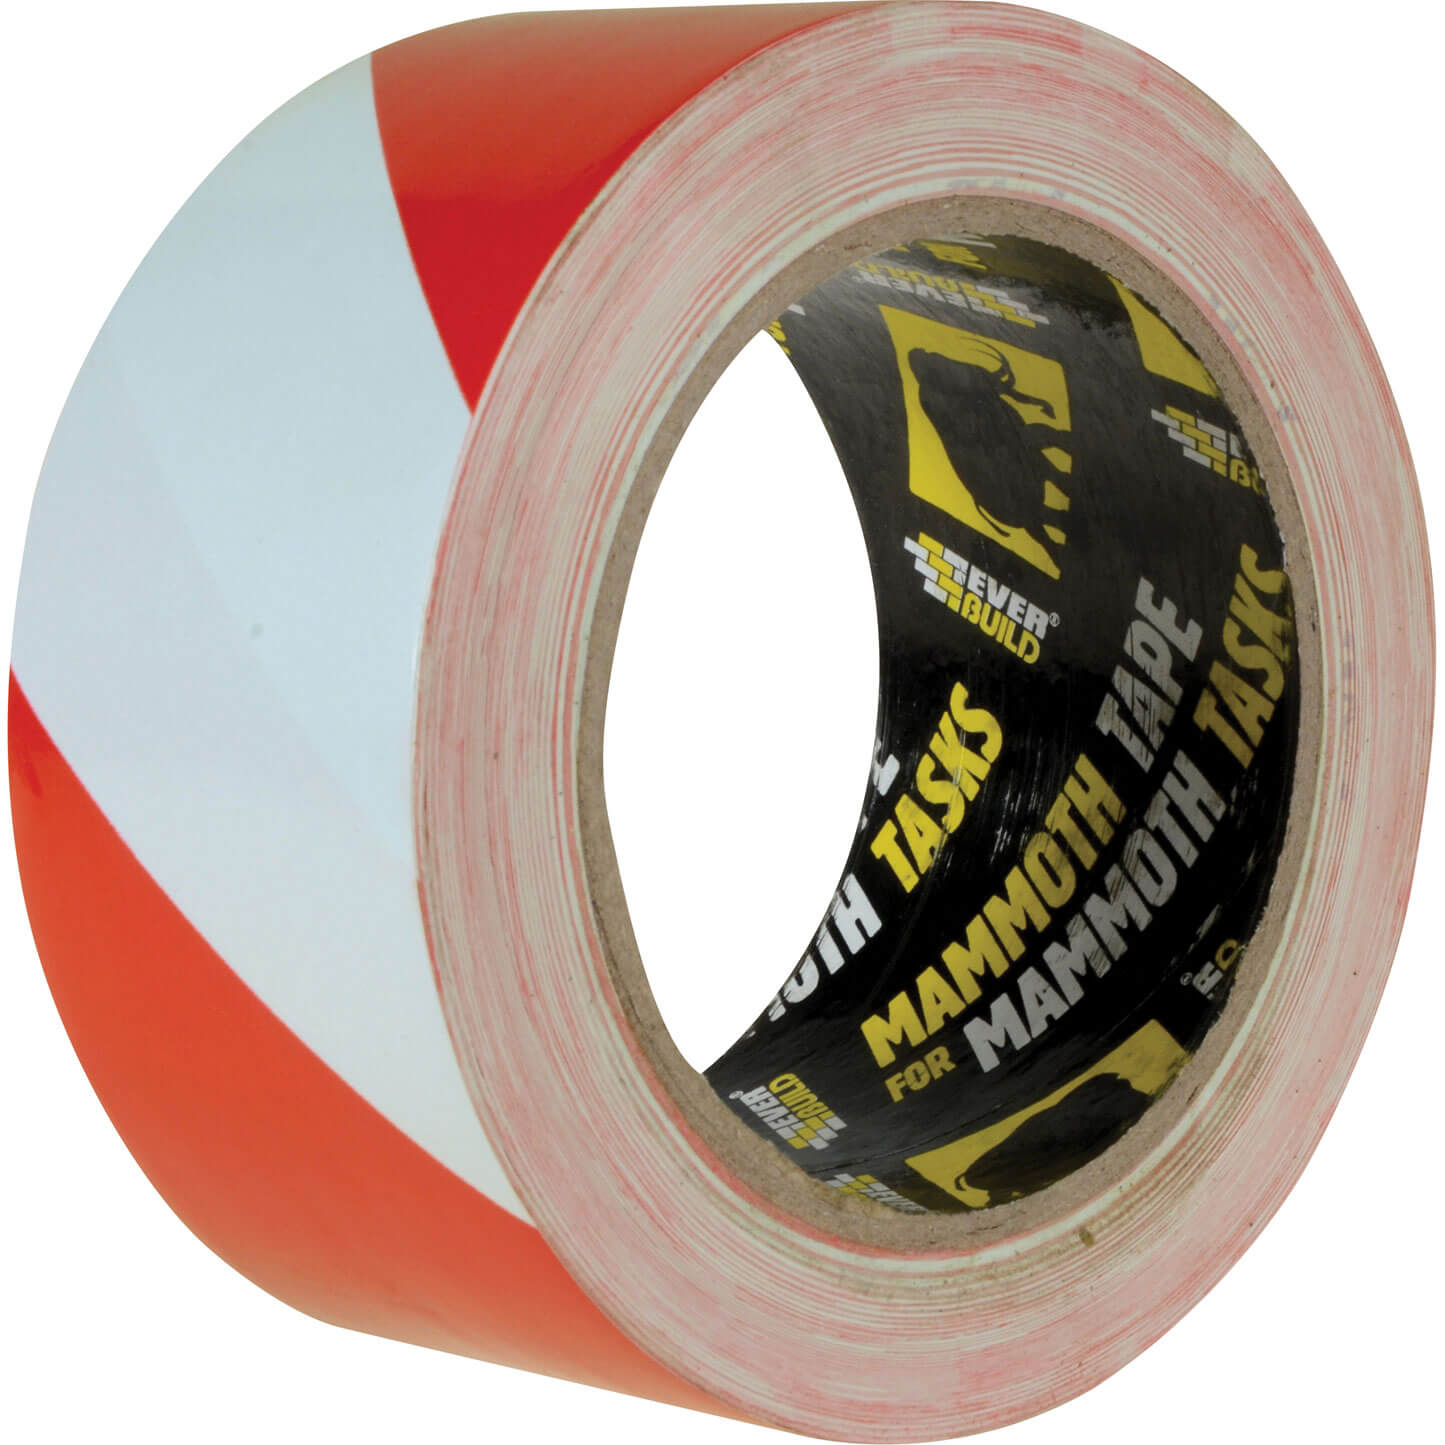 Image of Everbuild PVC Hazard Tape Red / Black 50mm 33m